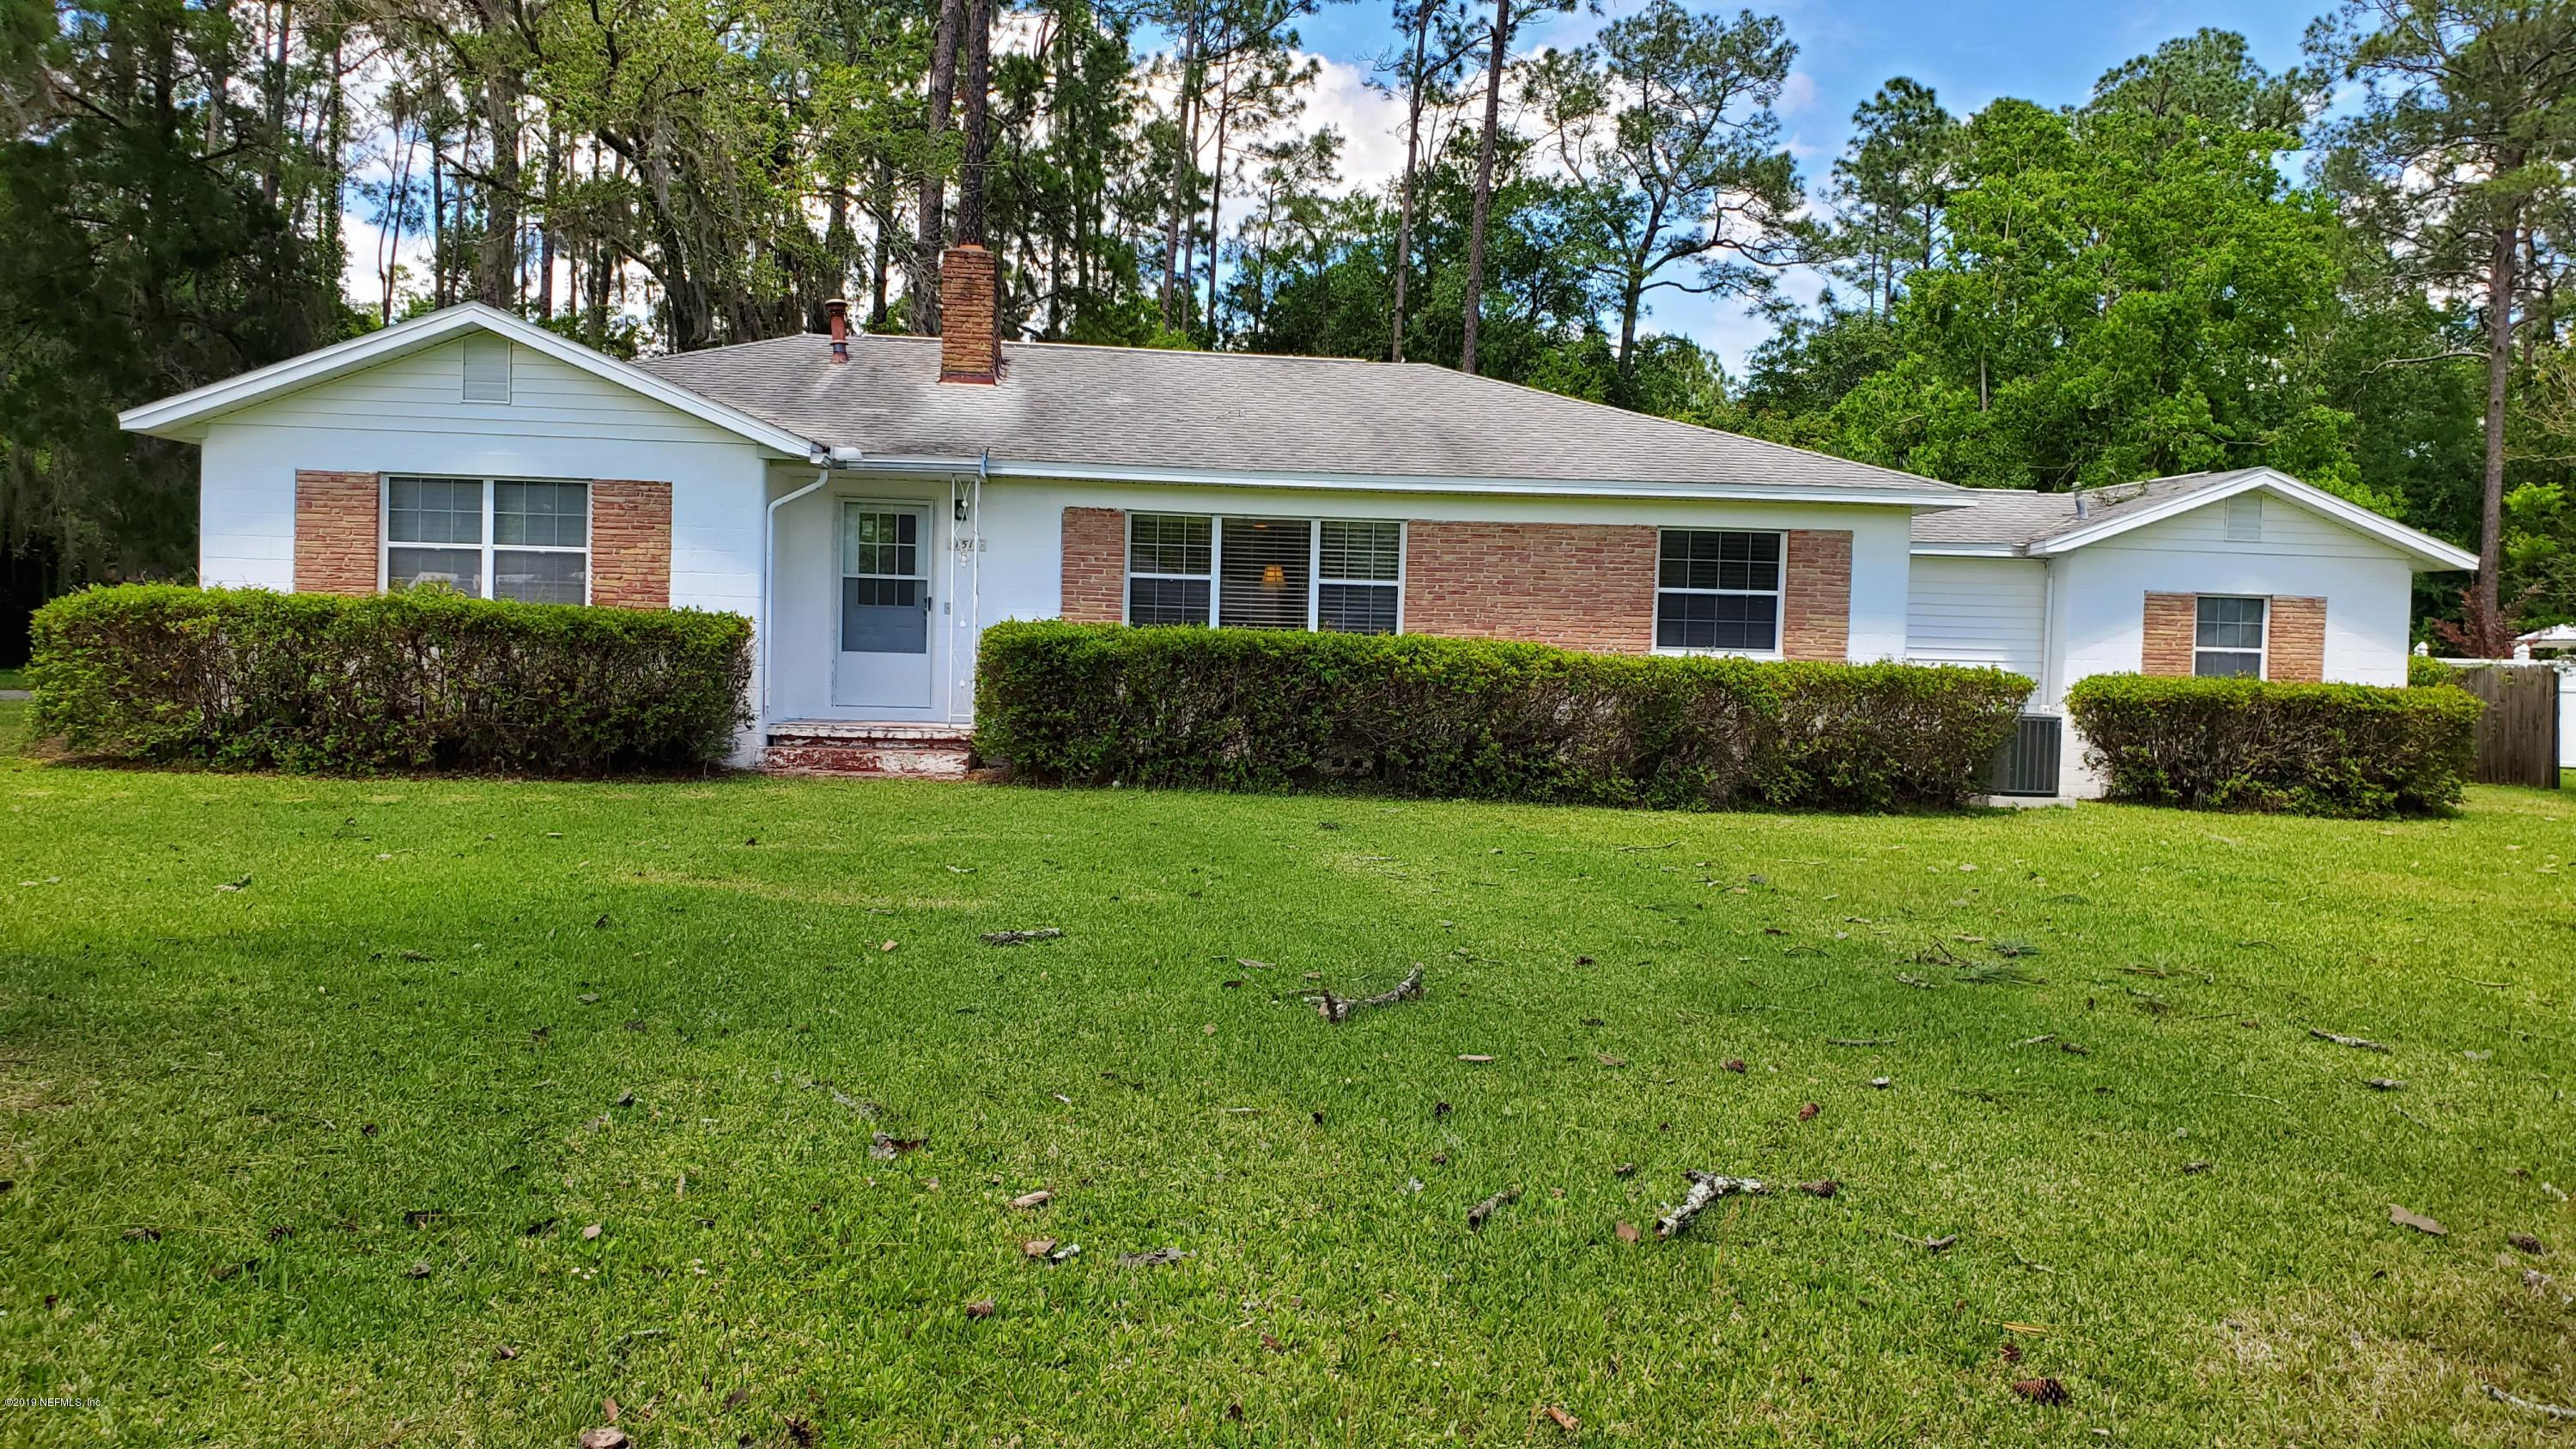 1511 CALL, STARKE, FLORIDA 32091, 3 Bedrooms Bedrooms, ,1 BathroomBathrooms,Residential - single family,For sale,CALL,991001